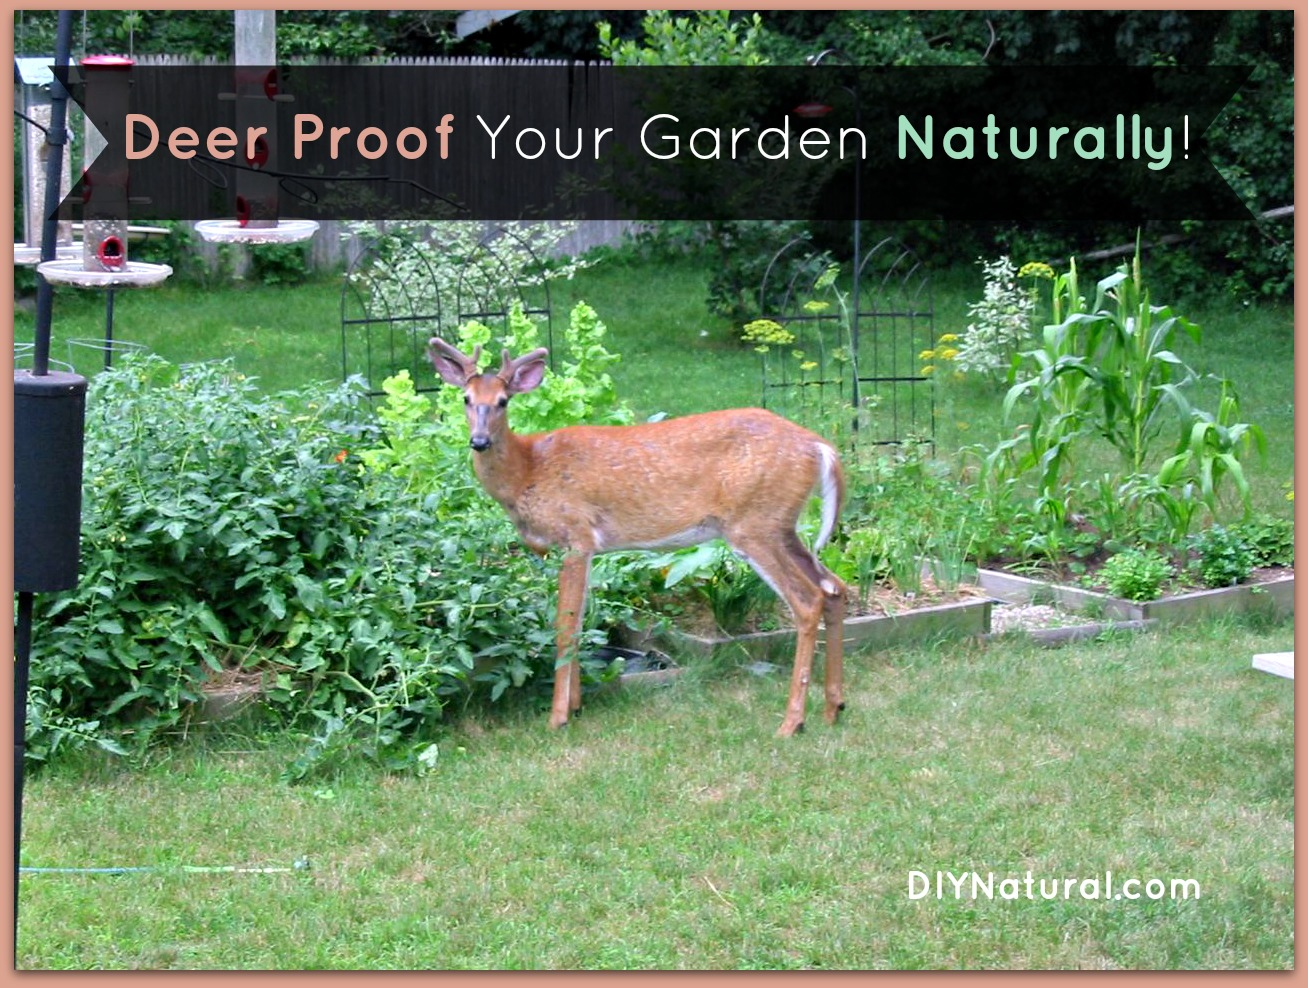 Deer Proof Garden Fence Deer Proof Gardening Lifestyle